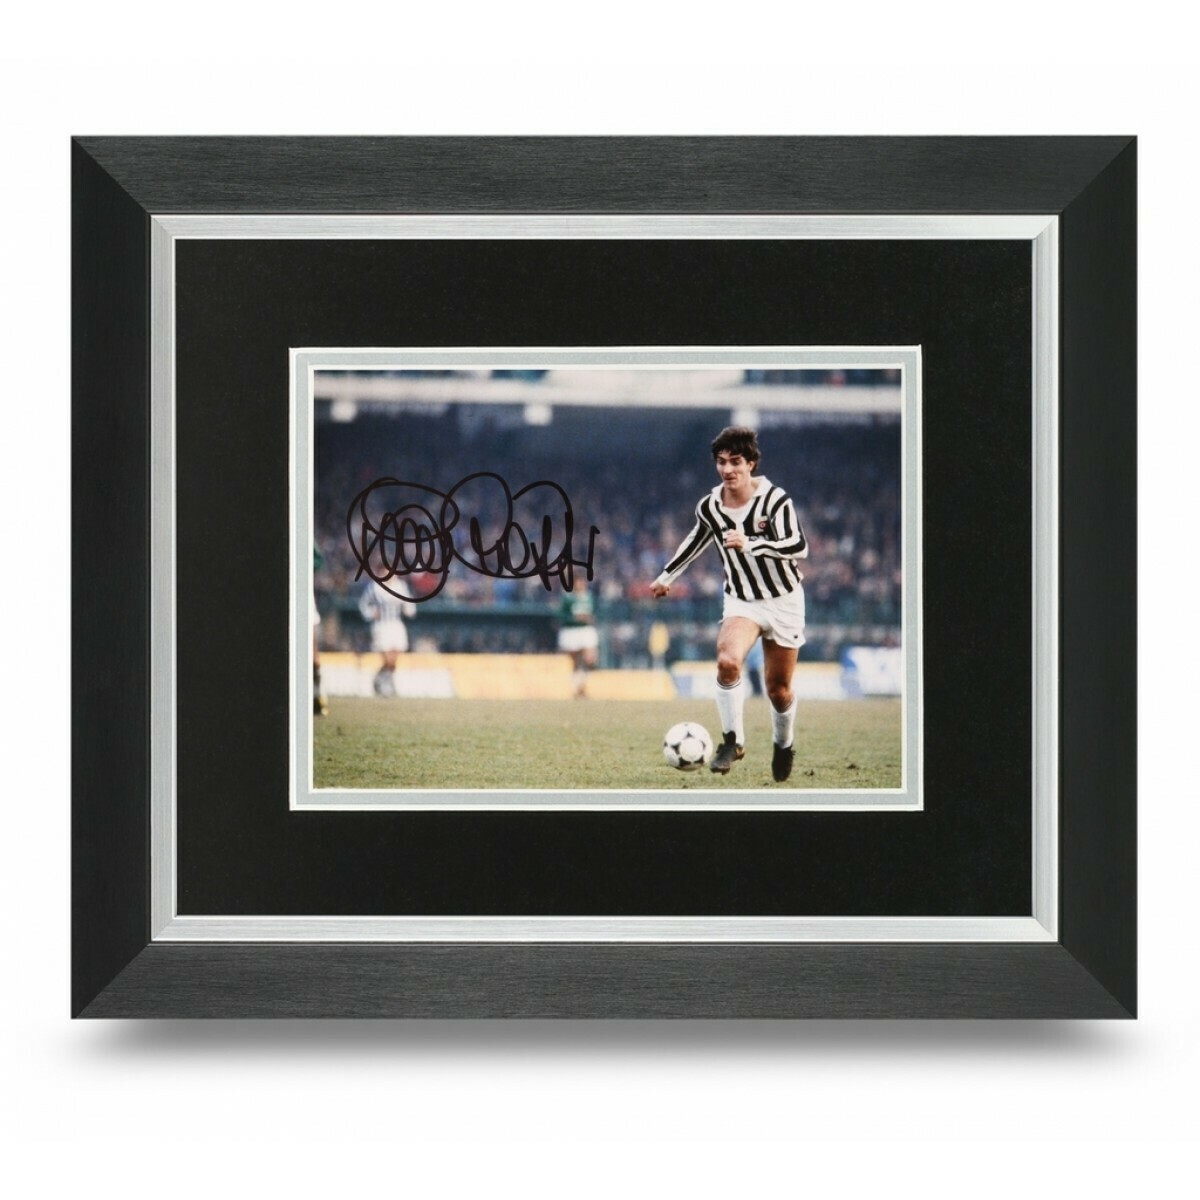 Paolo Rossi PHOTO framed Paolo Rossi  10*8   AUTOGRAFATA  CORNICE SIGNED AUTOGRAPH SIGNED Paolo Rossi PHOTO FRAMED  SIGNED JUVENTUS